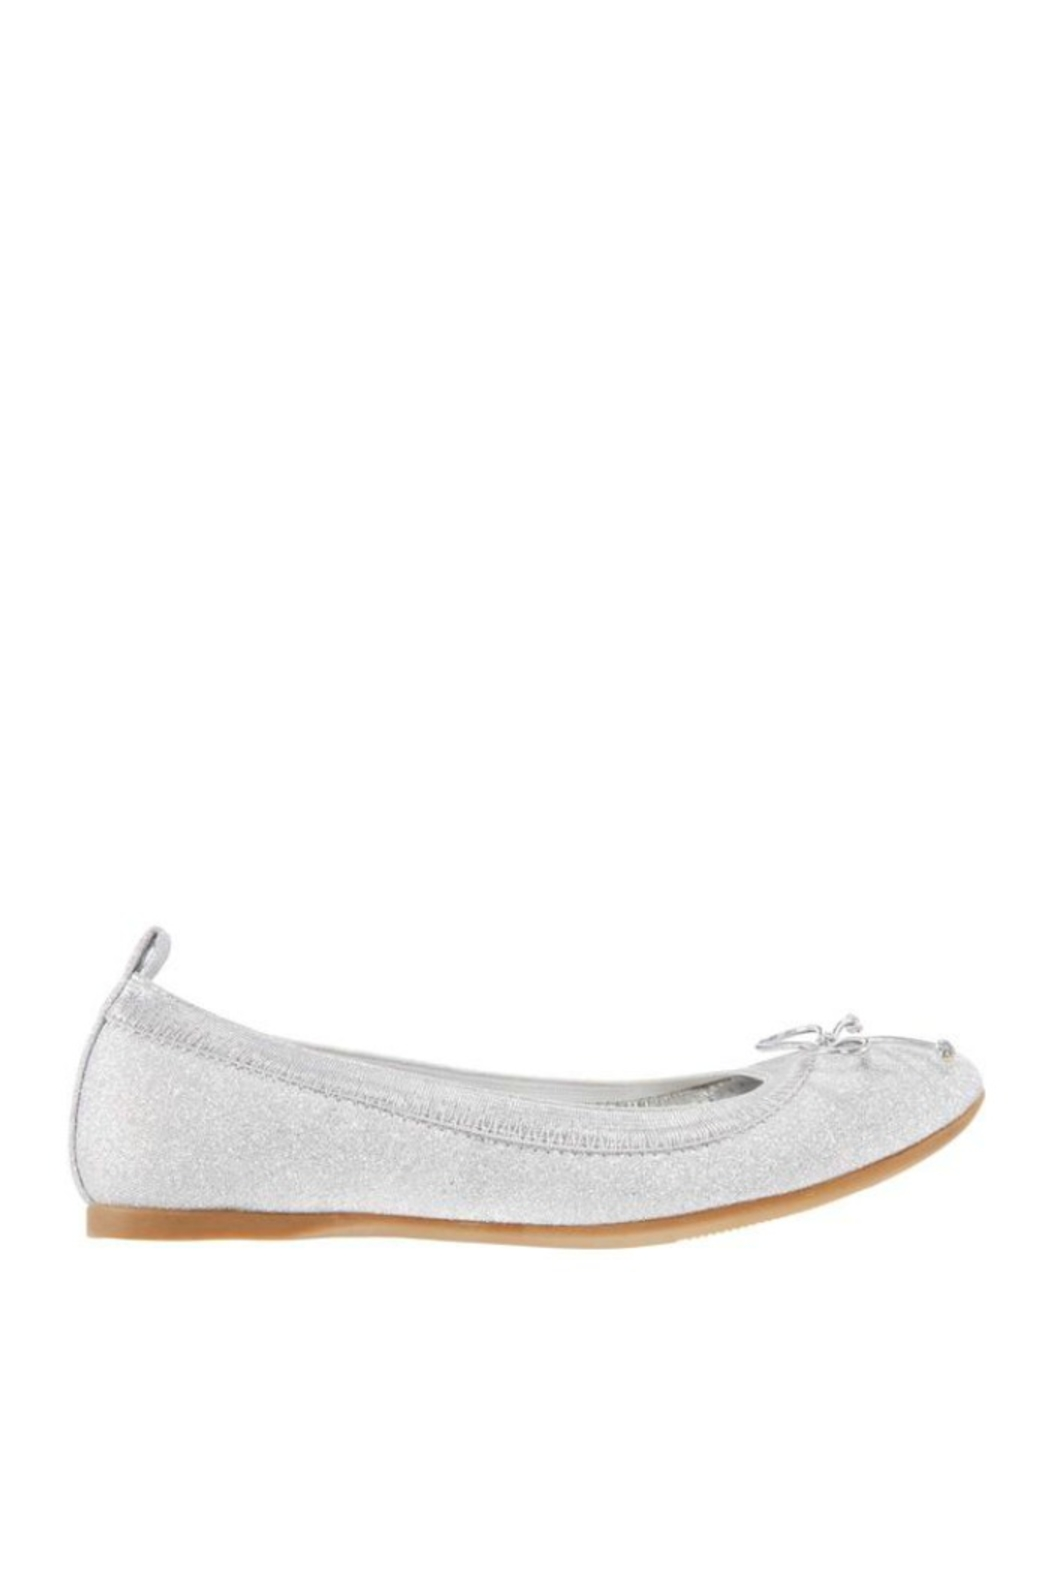 Nina Kids Esther Flat in Silver - Front Full Image